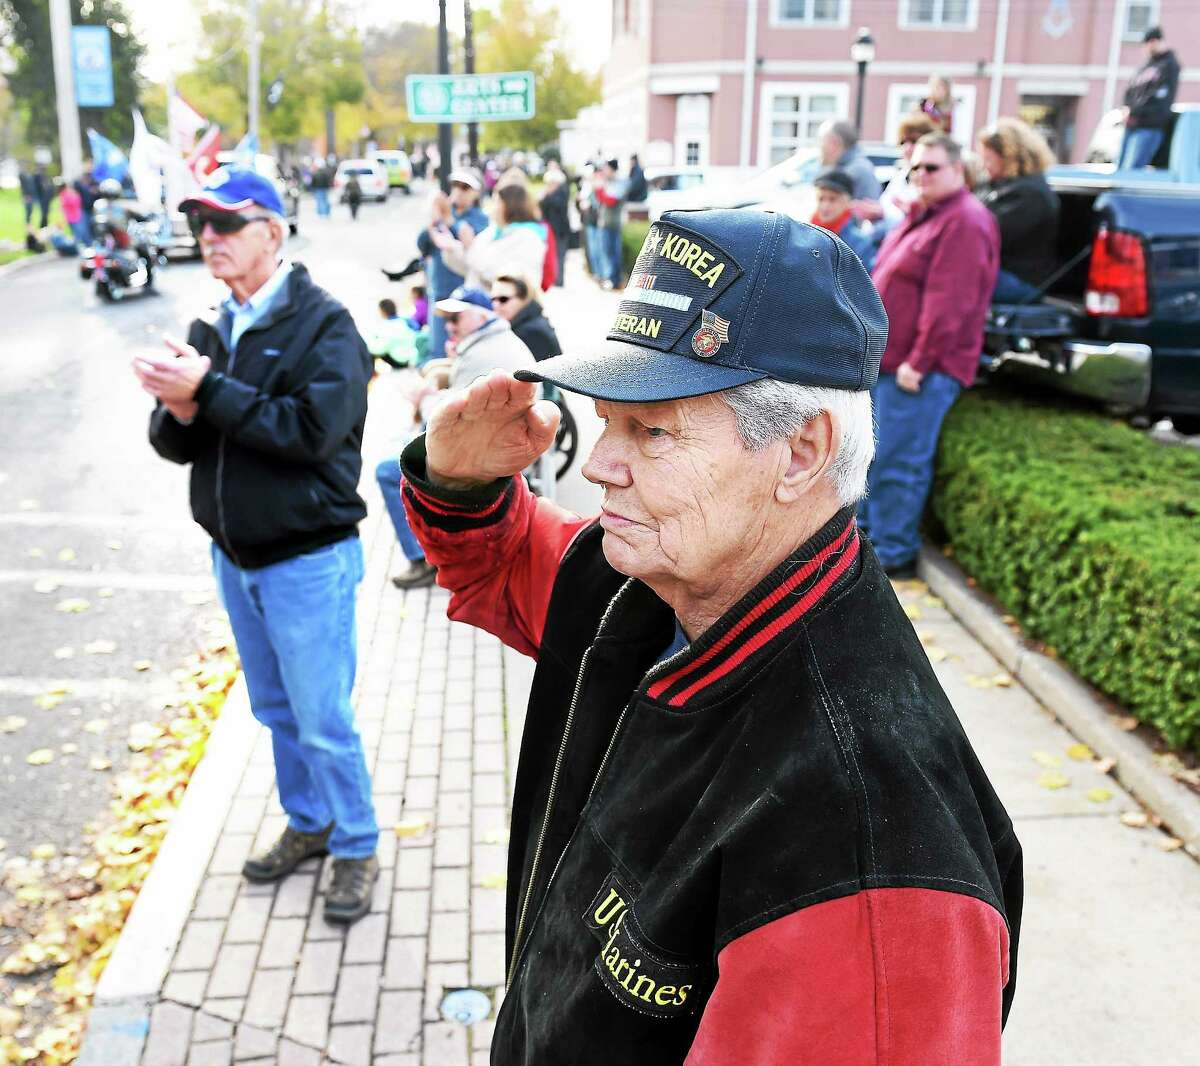 John D. Phillips, Sr., center, of Milford salutes the flag as it passes during a Veterans Day parade on Broad St. in Milford Sunday. Phillips served as a Marine in World War II and Korea.